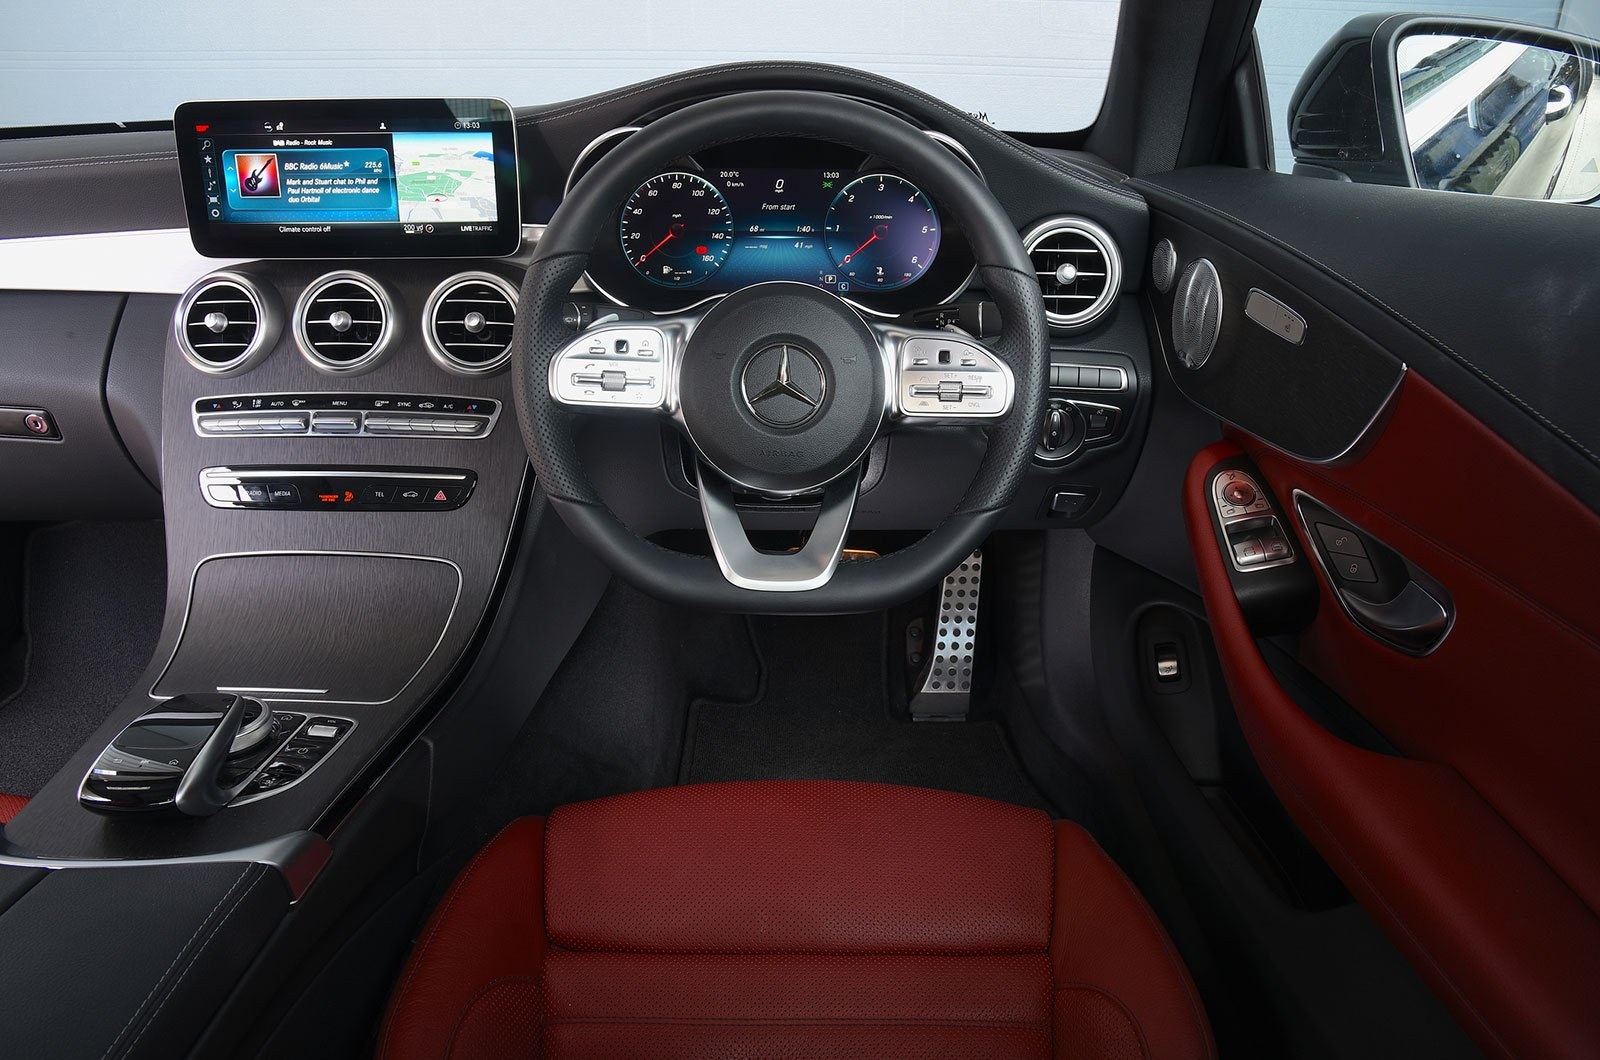 Mercedes C-Class Coupé interior